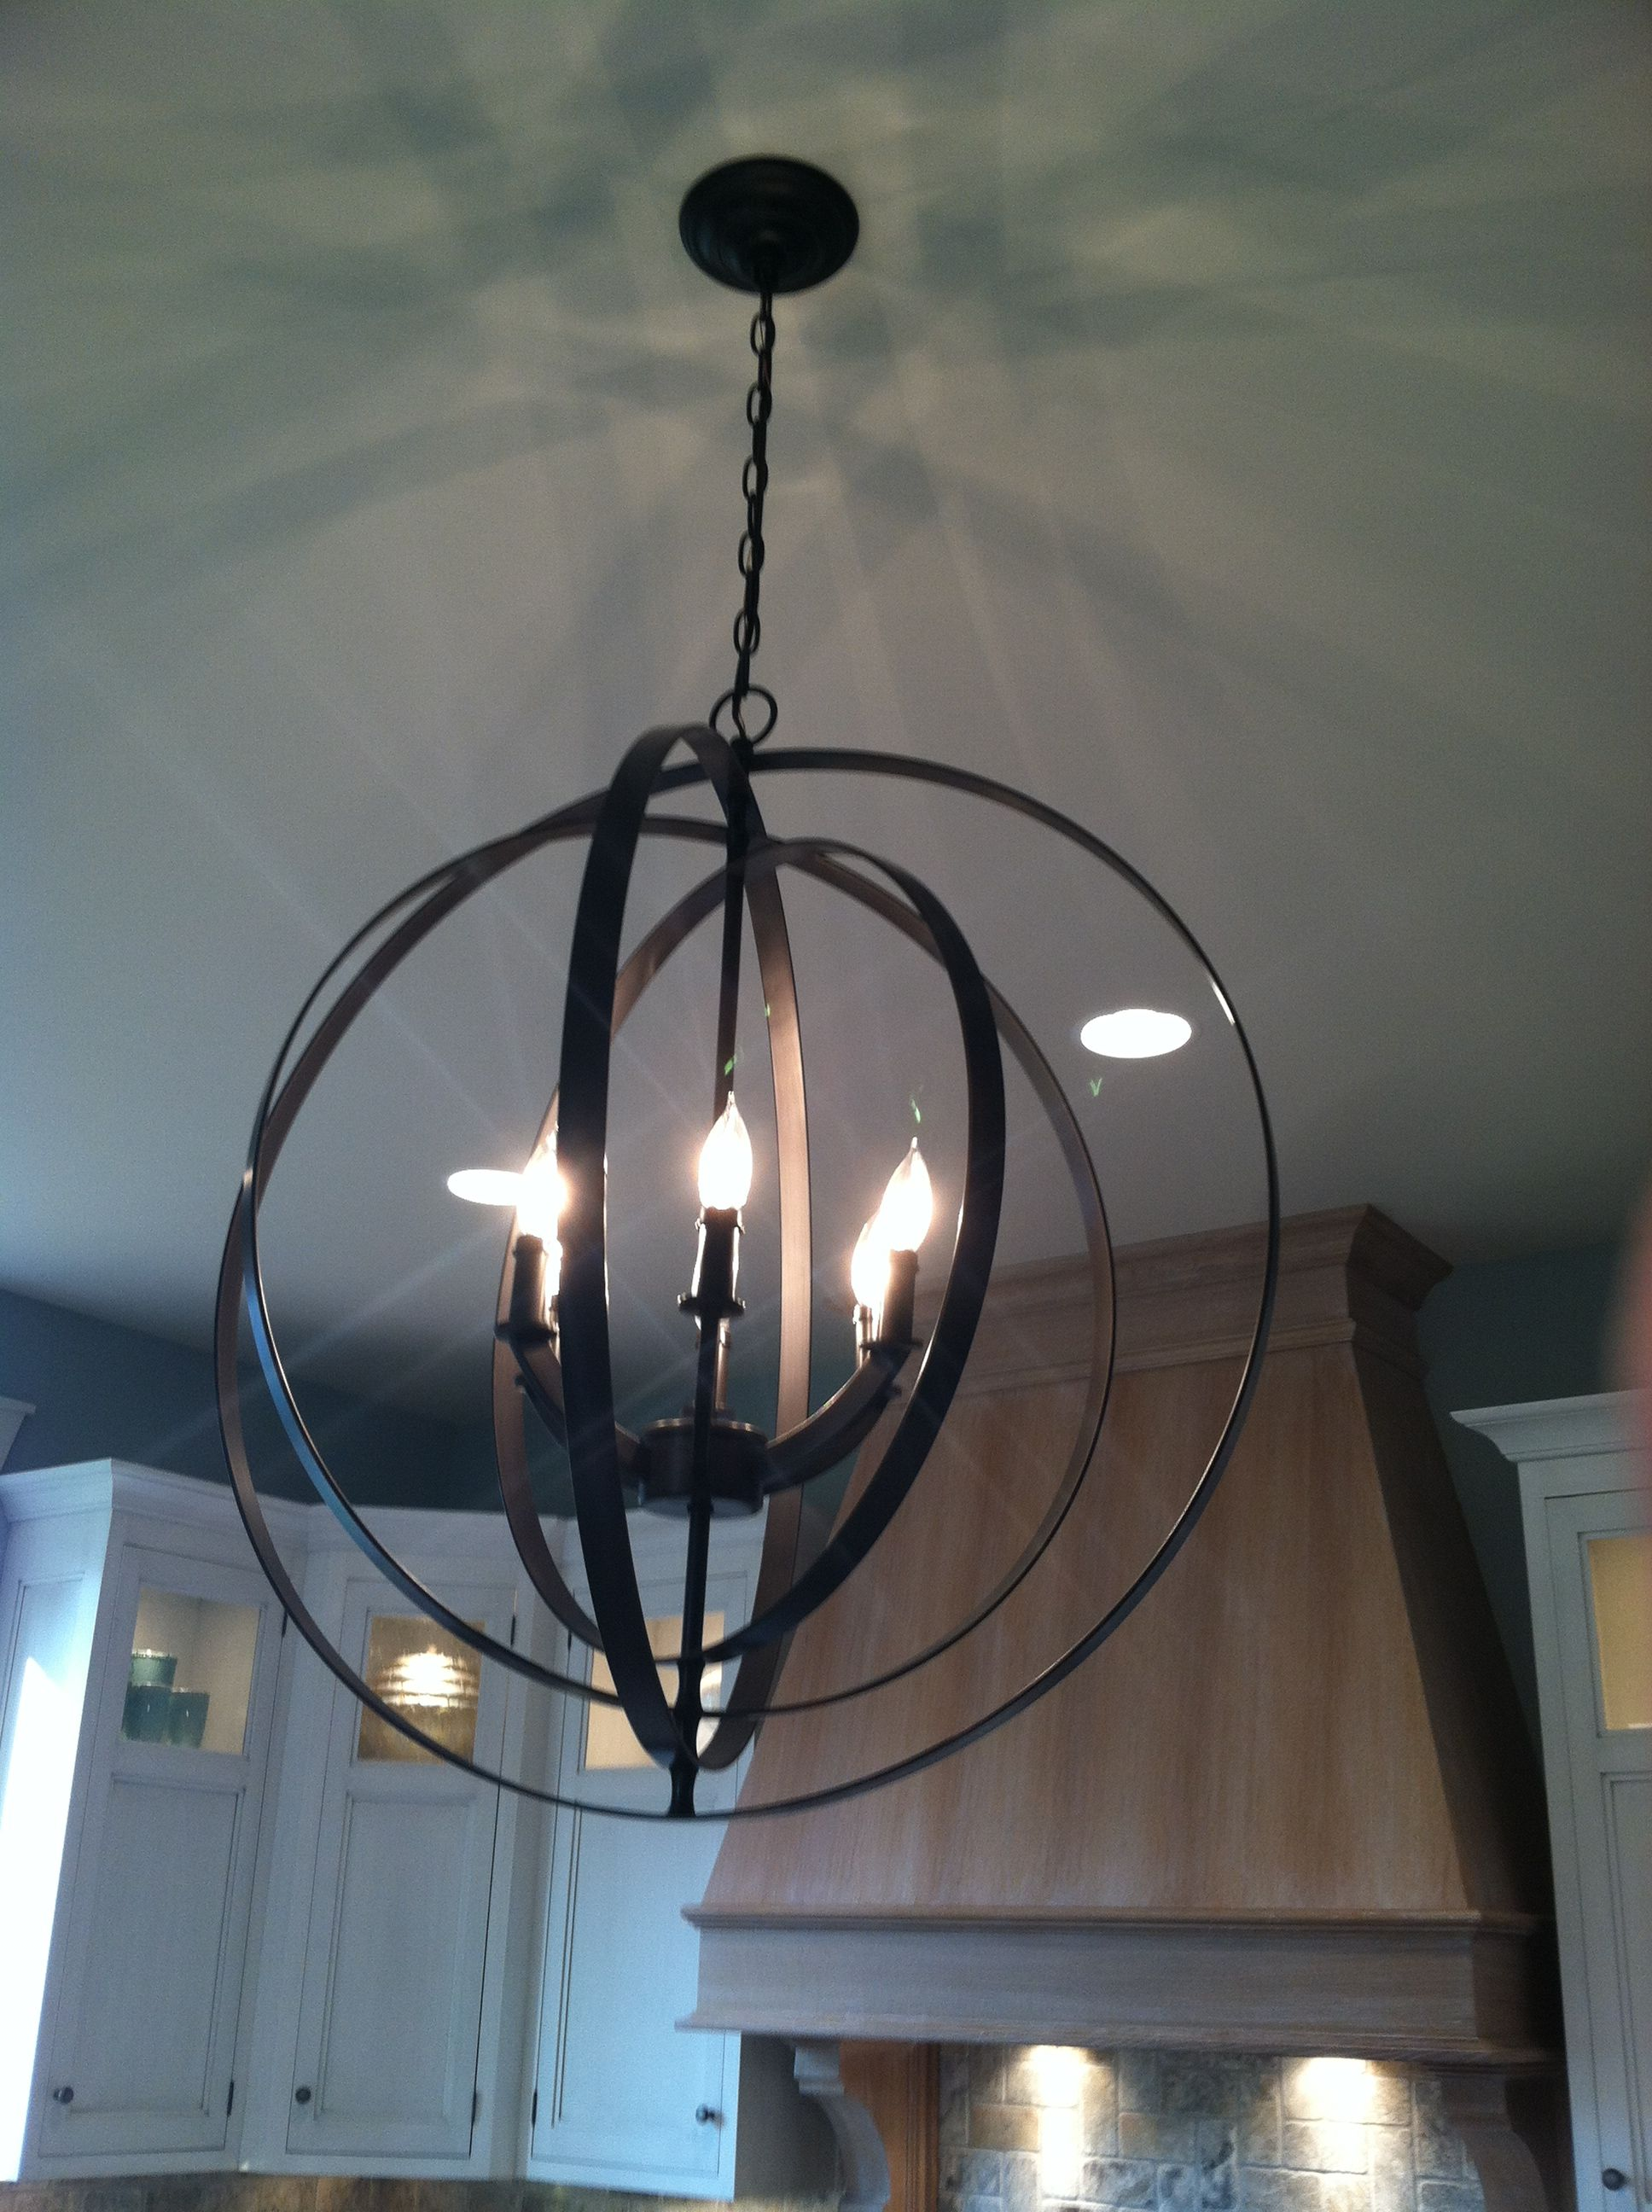 Pin By Chip Klang On Lighting Fixtures Wrought Iron Light Fixtures Light Fixtures Light